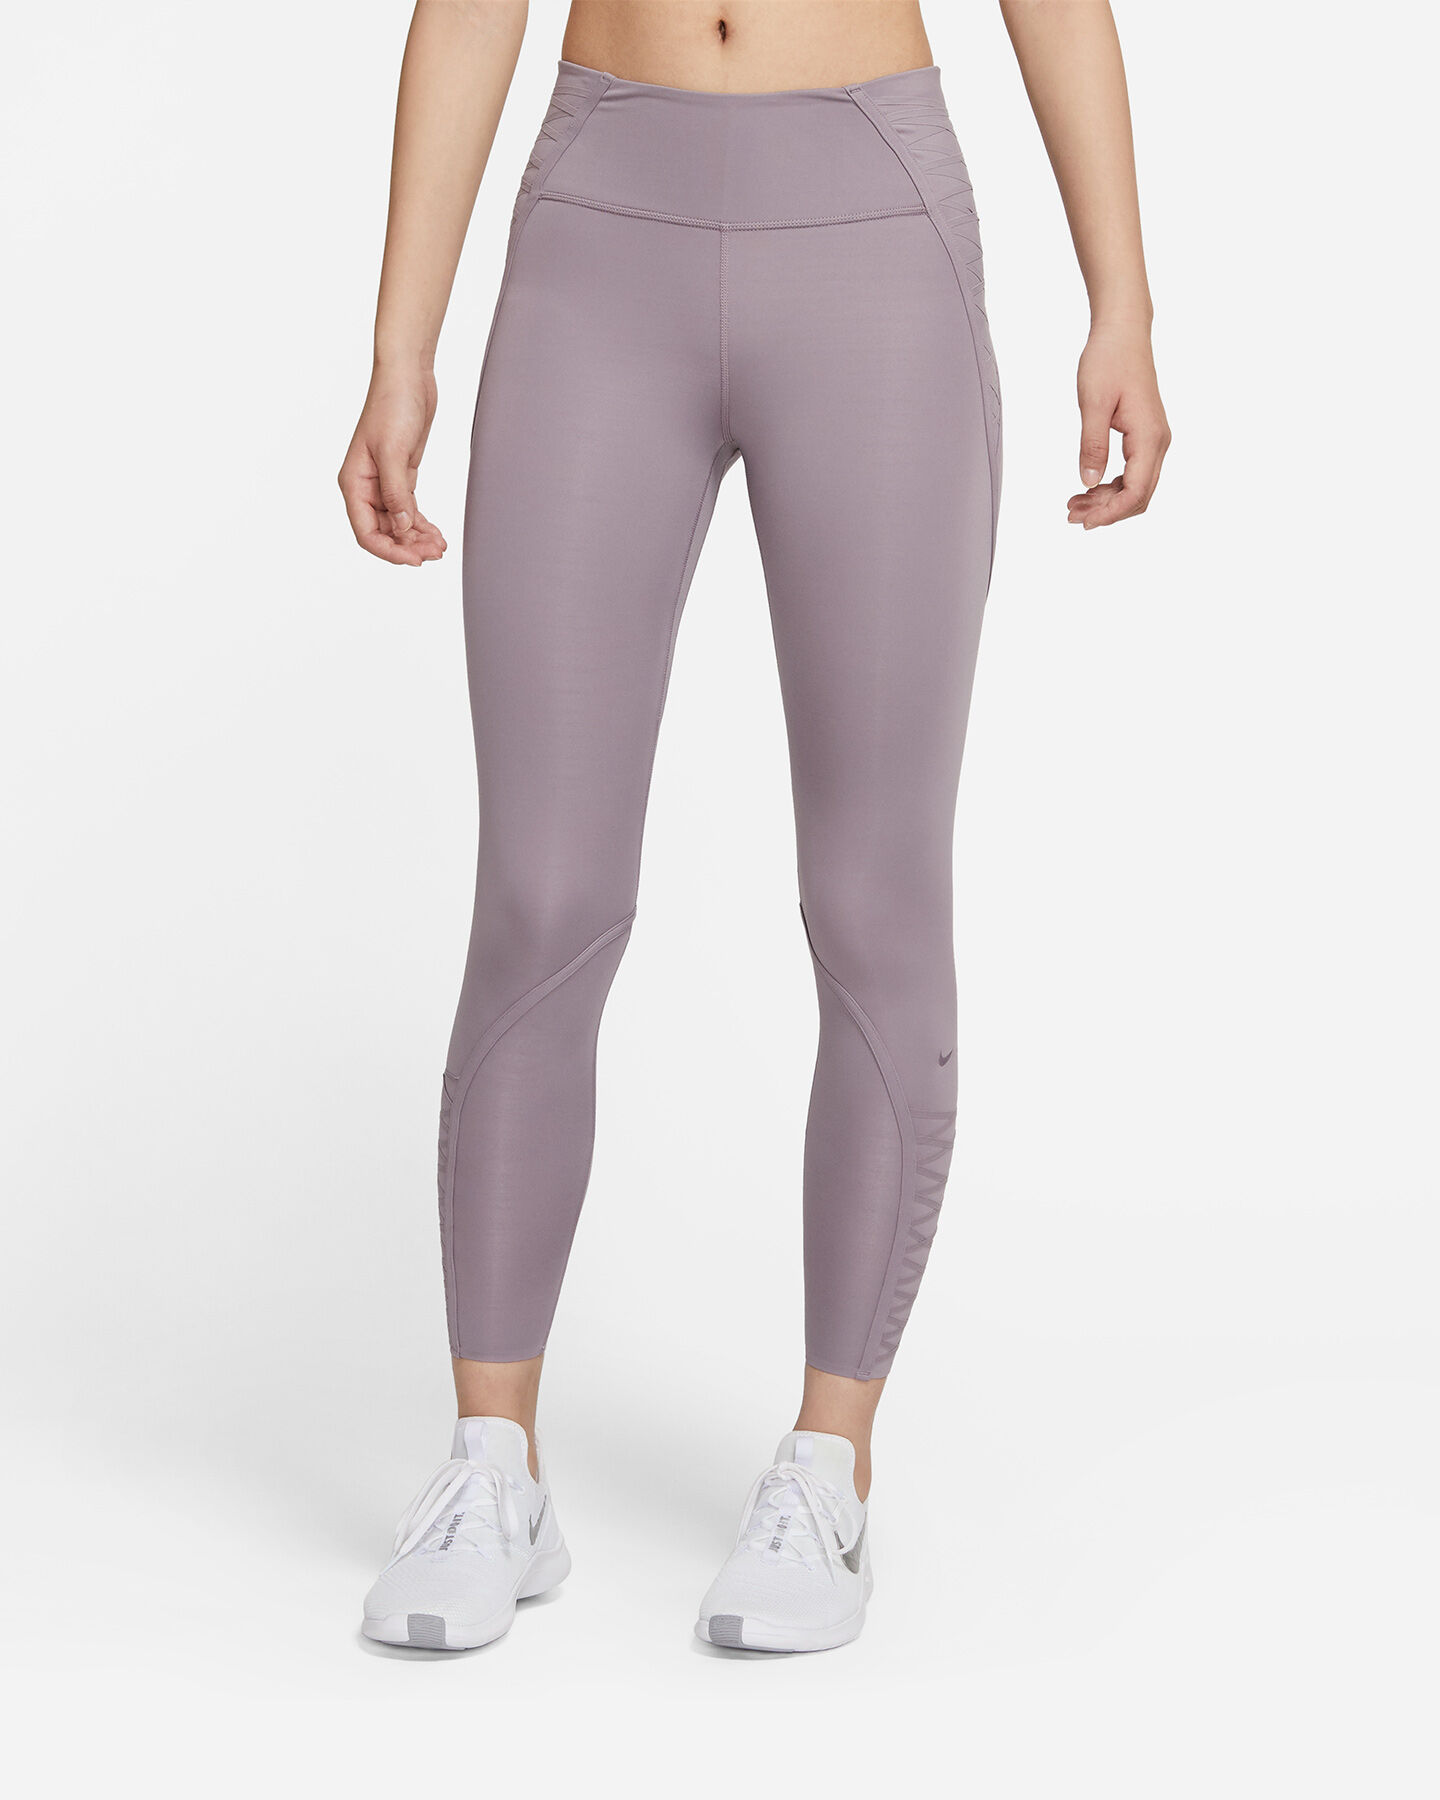 Leggings NIKE ONE LUX 7/8 W S5270517 scatto 0